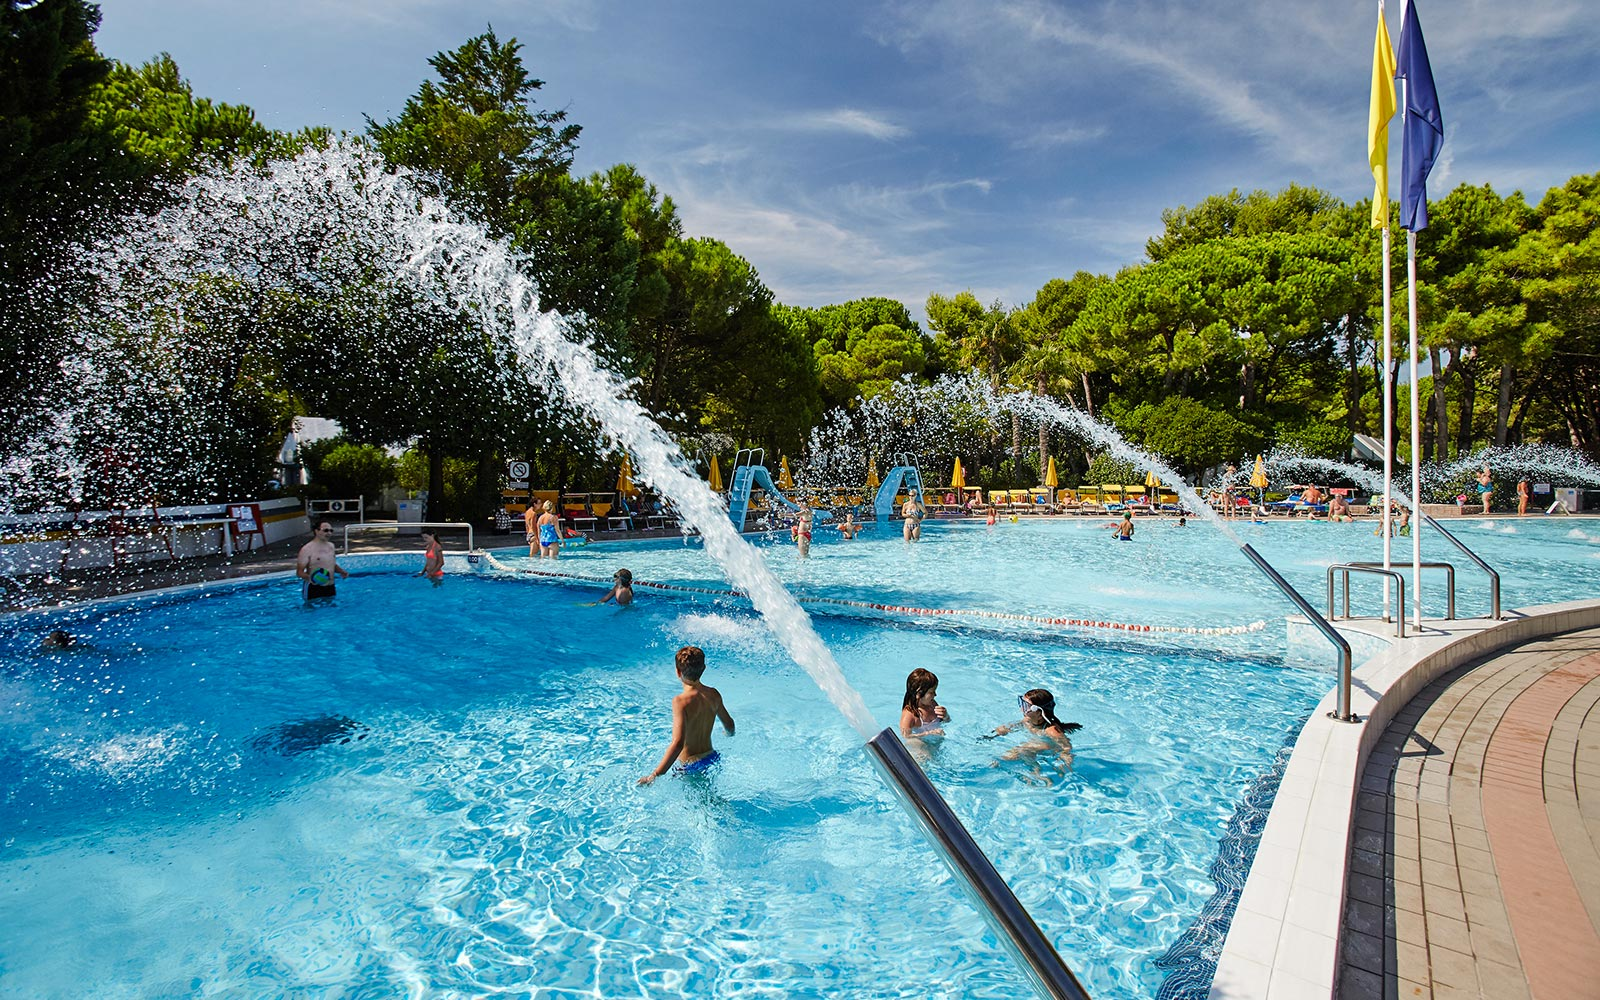 03. Pools holiday resort Cavallino